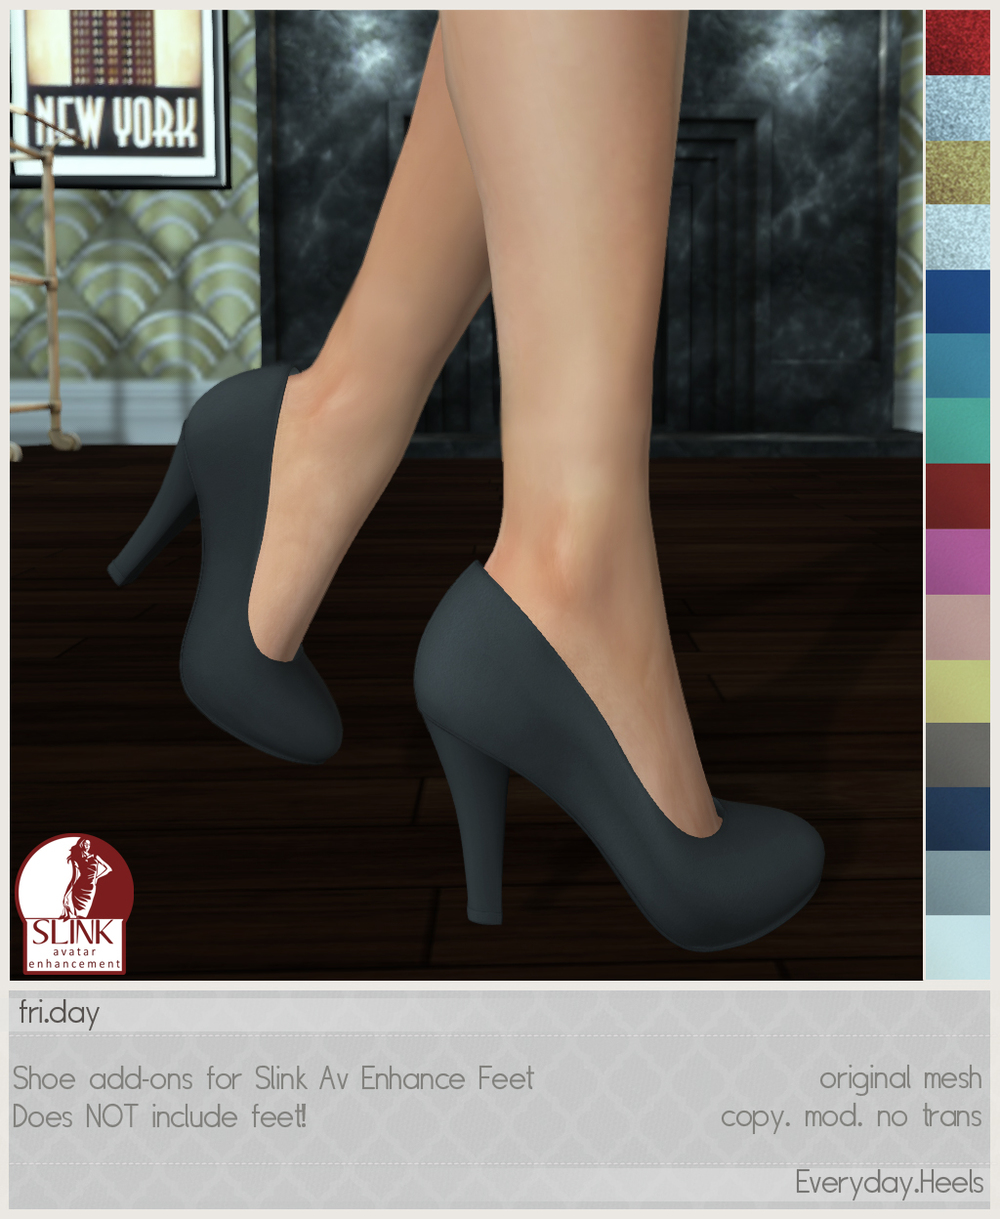 fri - Everyday Heels Ad.jpg